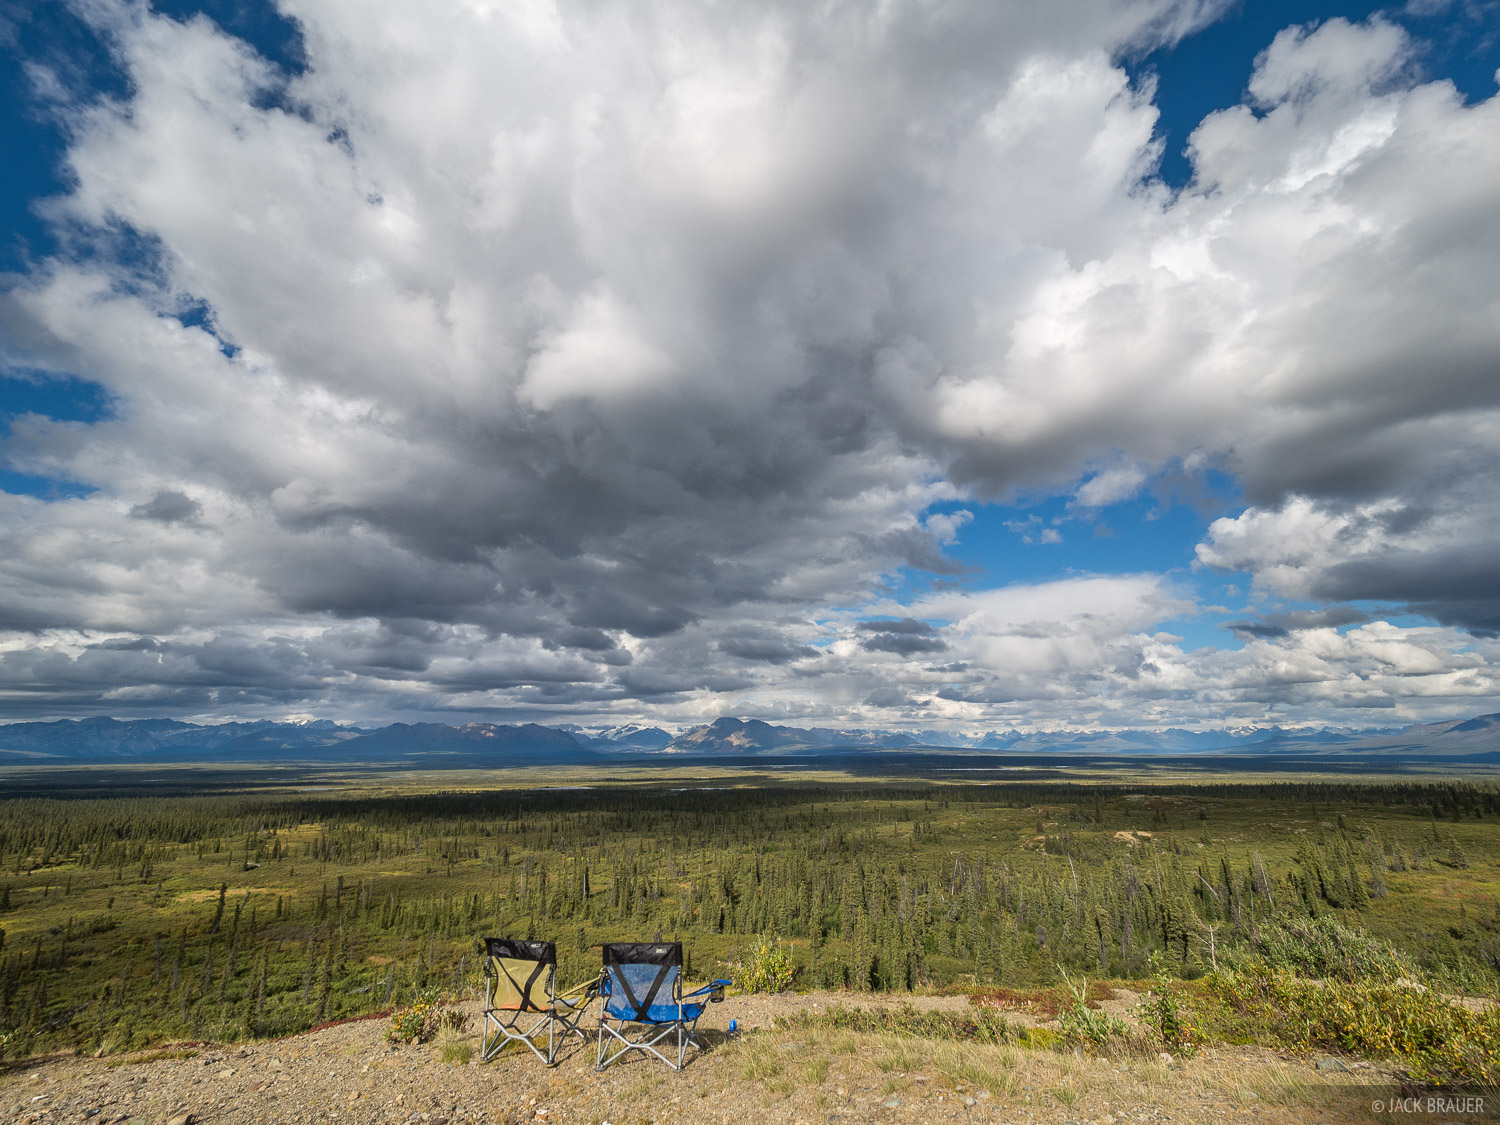 Driving along the remote and potholed Denali Highway, we spent an evening at this random camp spot overlooking the vast Monahan...